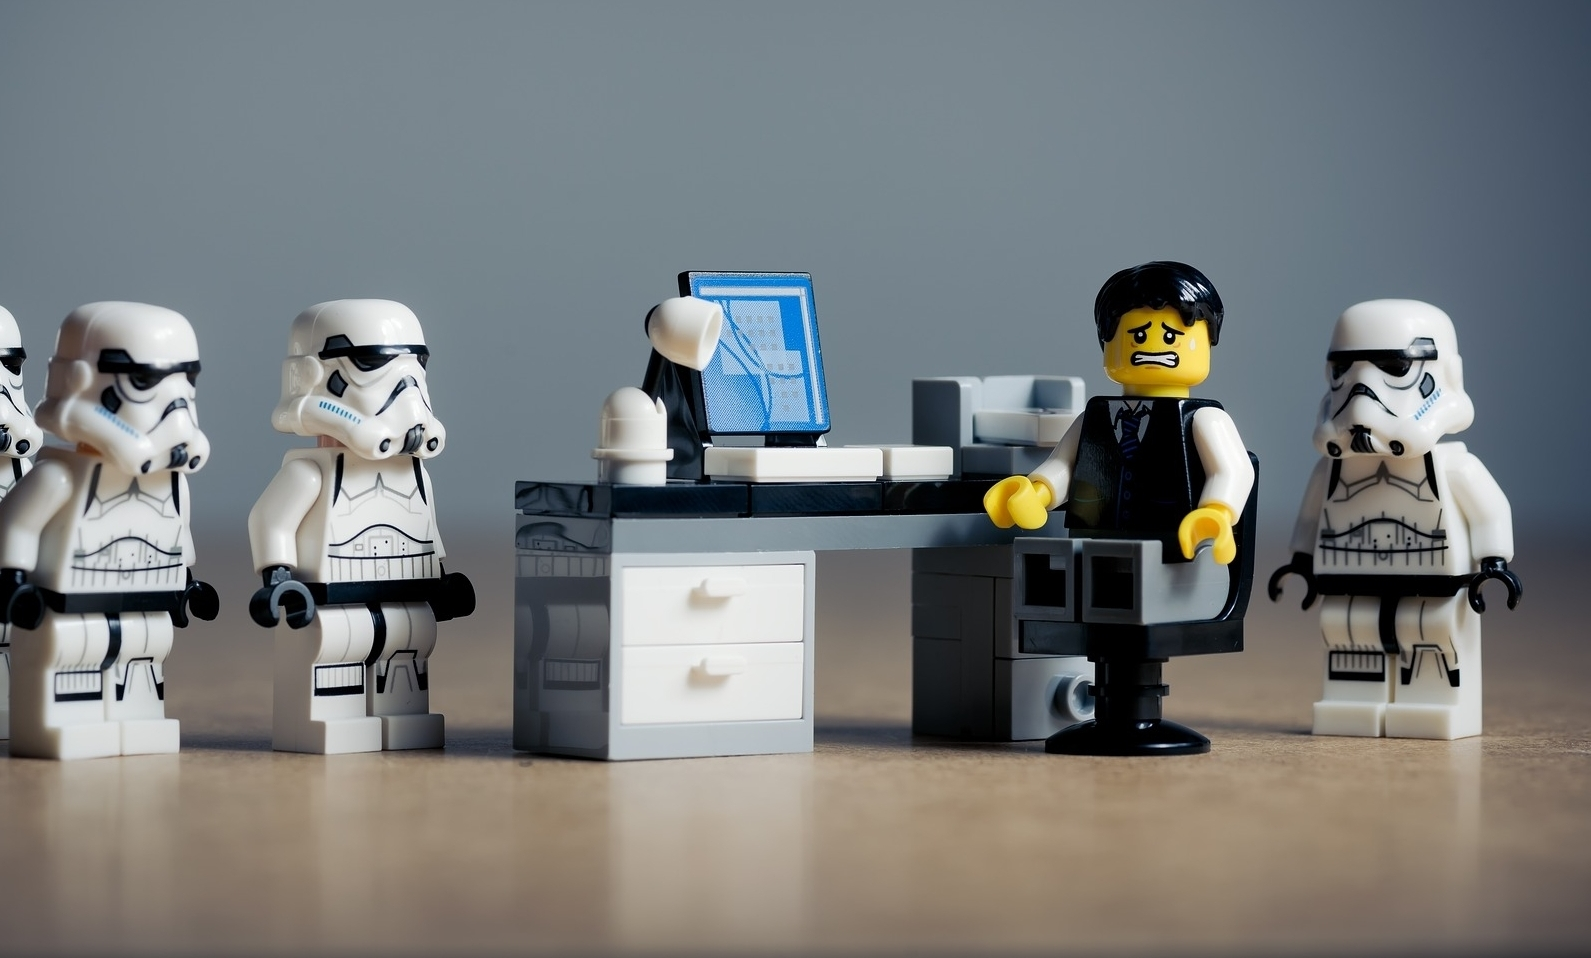 Stress impacts the workplace - less stress = happier employees